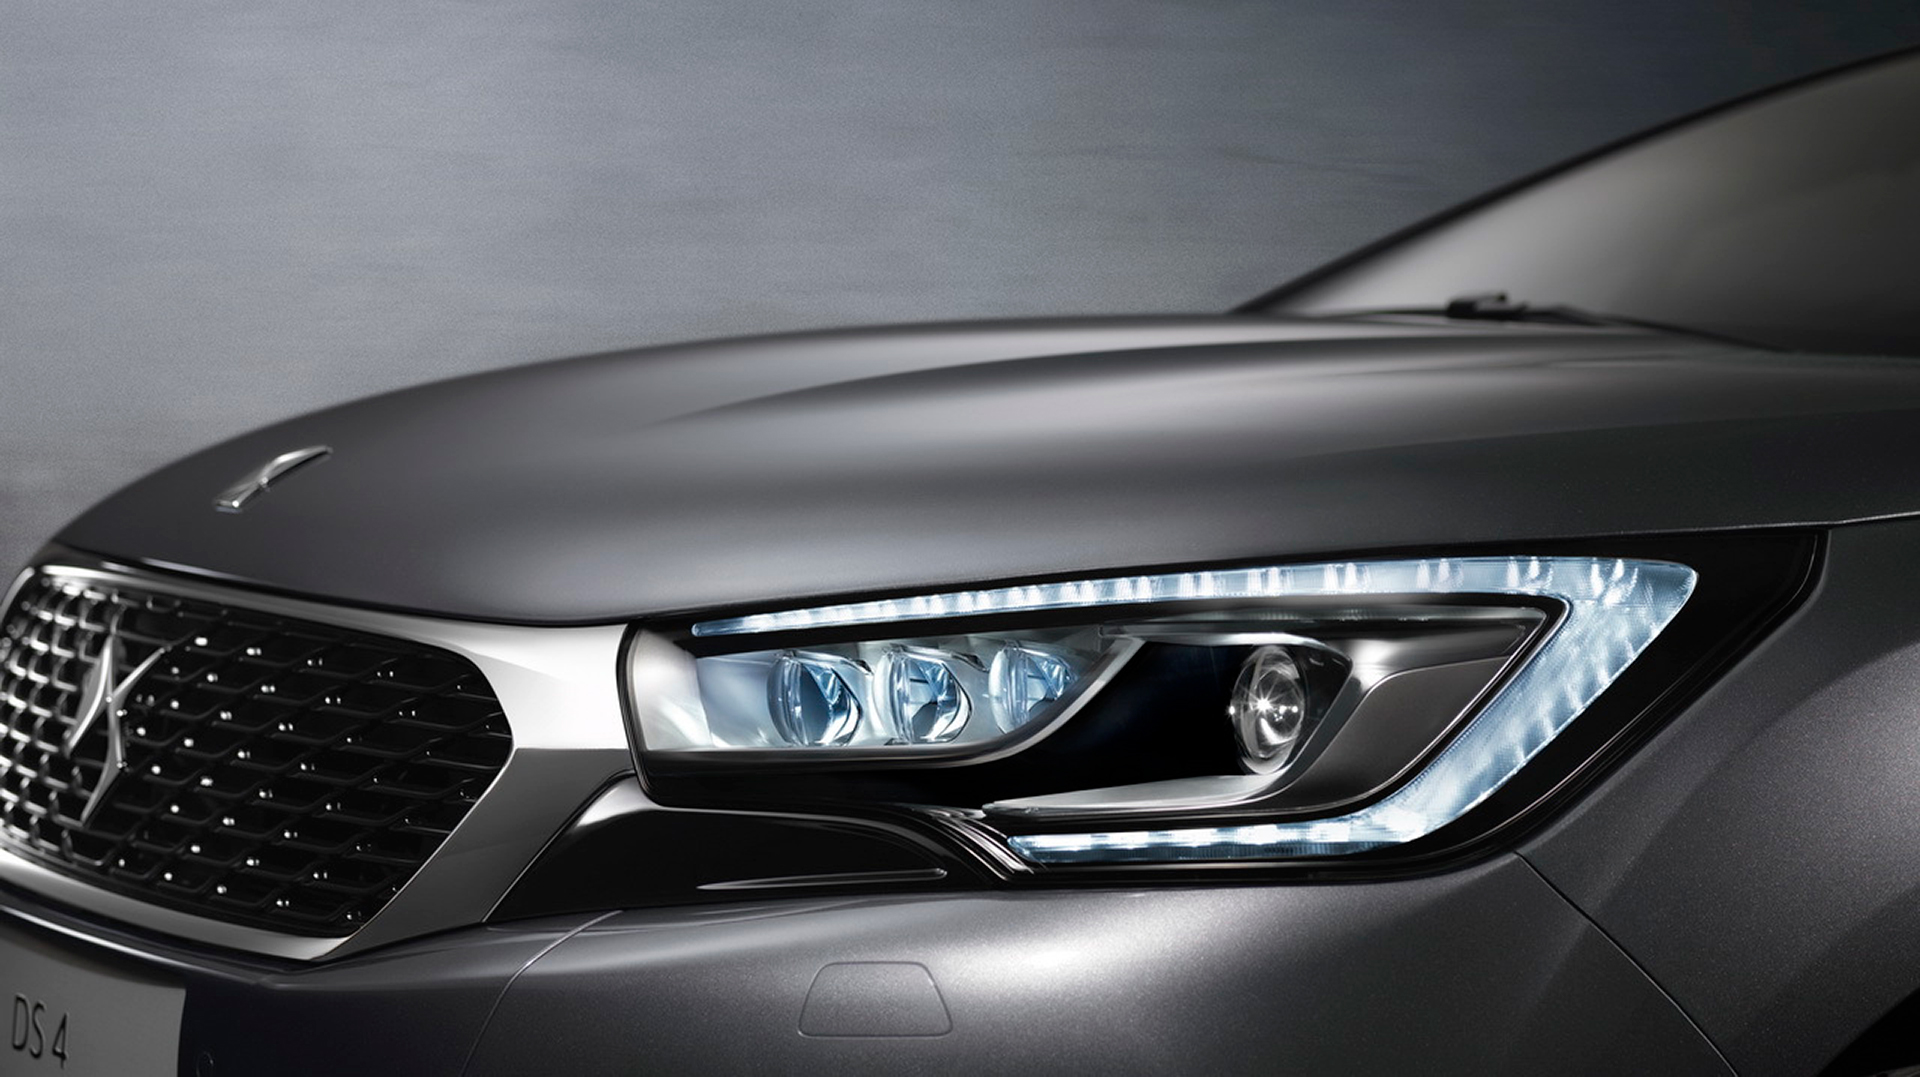 New DS 4 - DS Automobiles - 2015 - optique avant / front LED